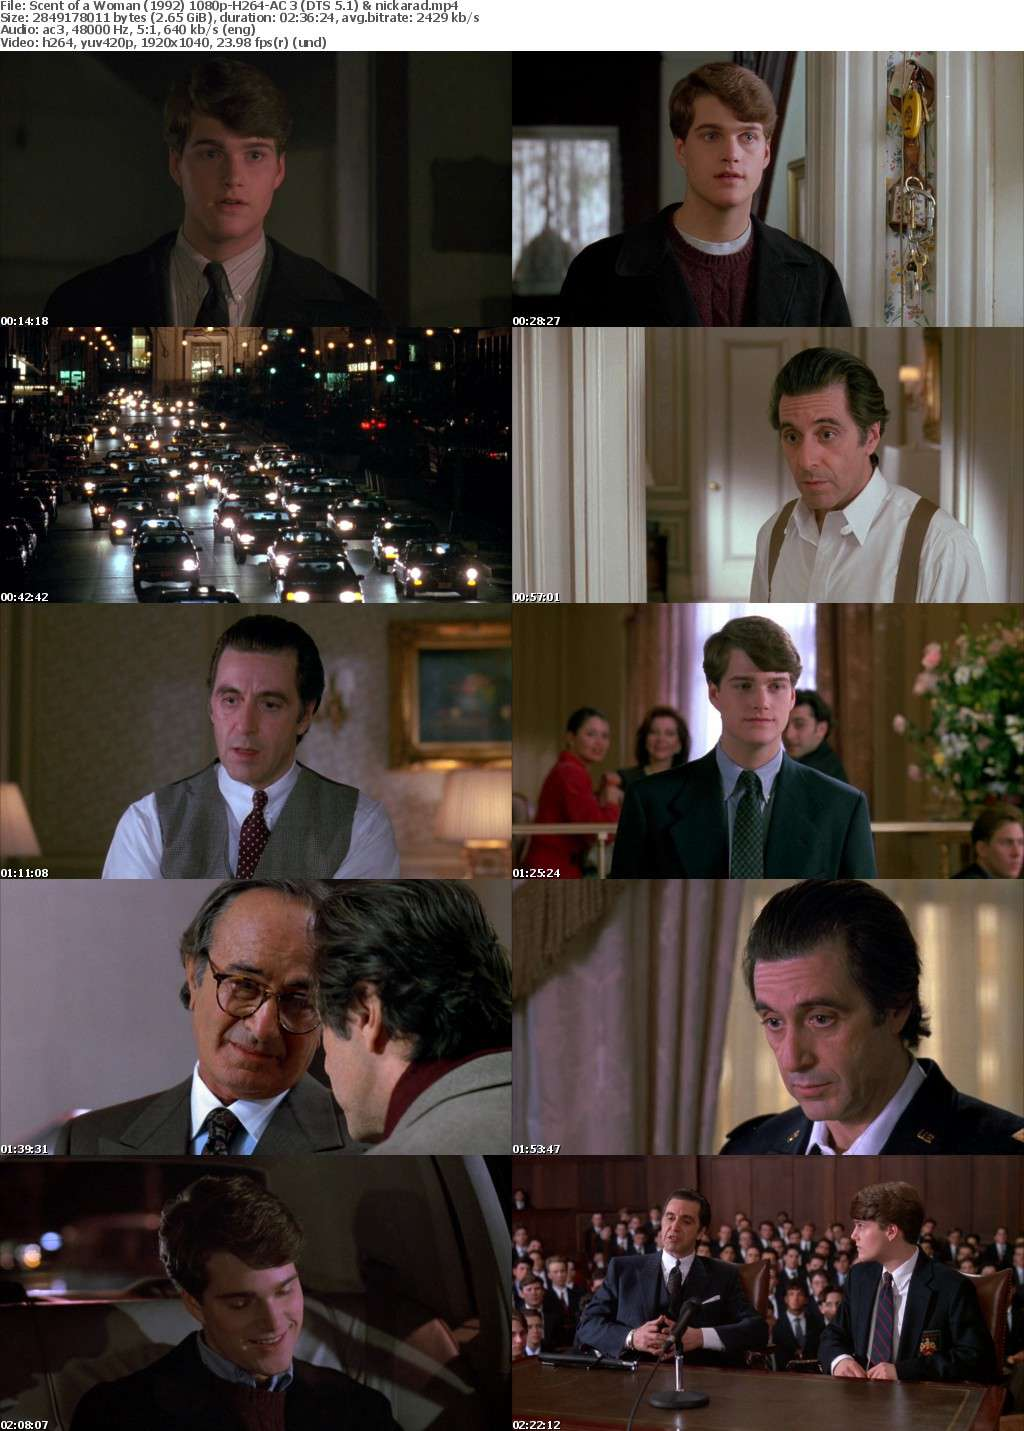 Scent of a Woman (1992) 1080p BluRay H264 AC3 Remastered-nickarad